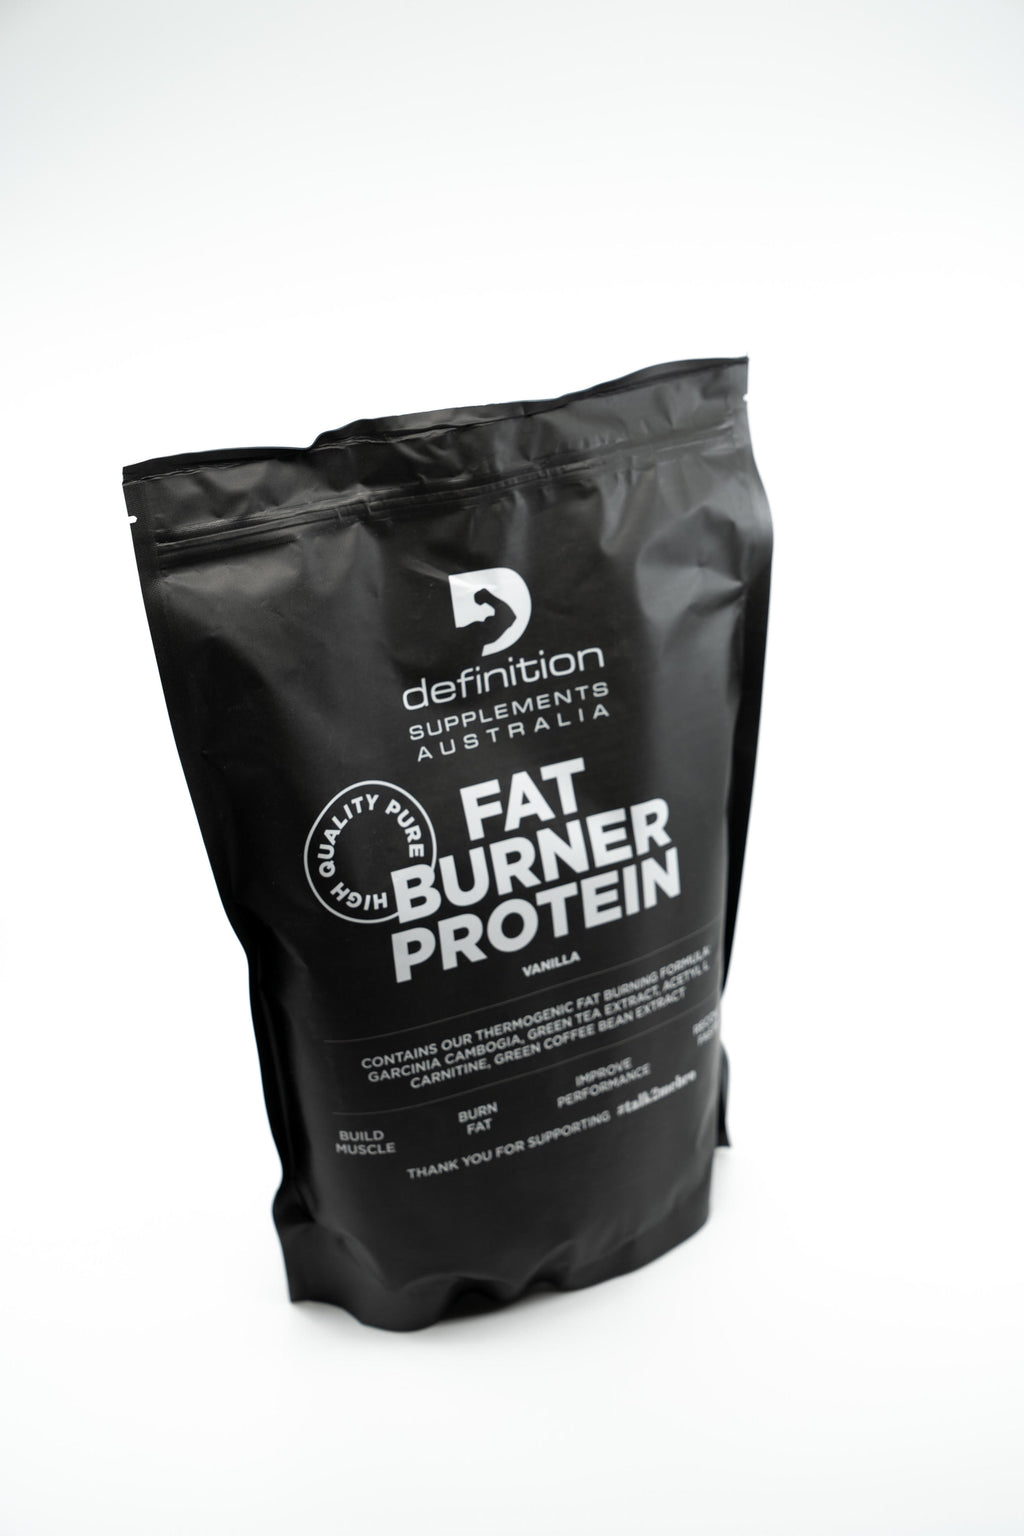 FAT BURNER PROTEIN - VANILLA